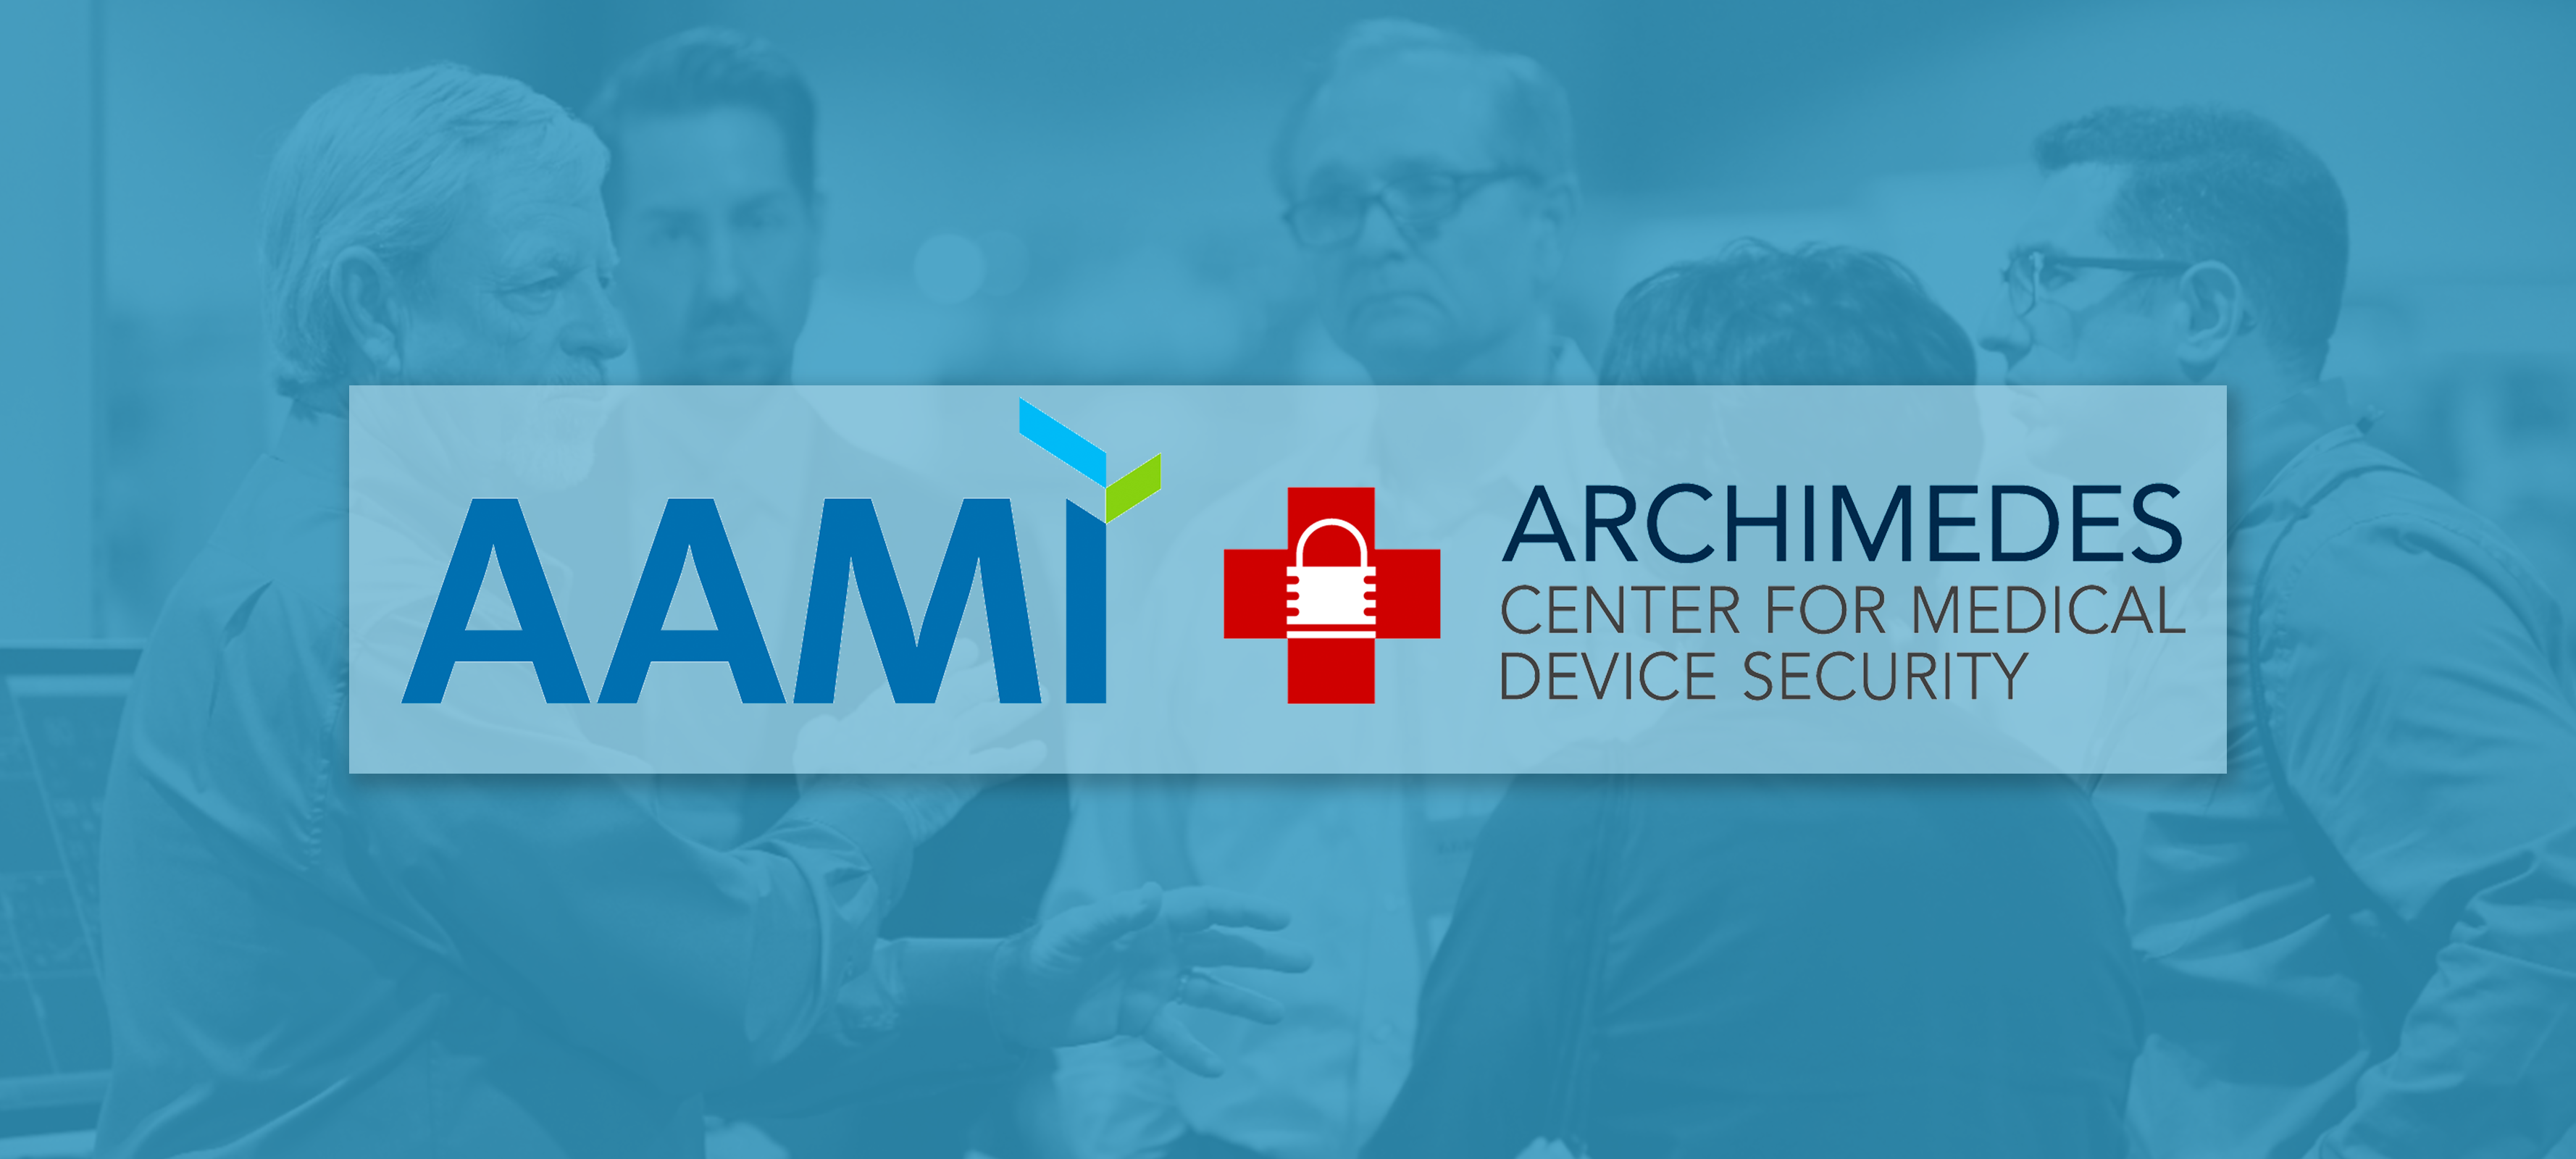 AAMI and Archimedes logos side-by-side